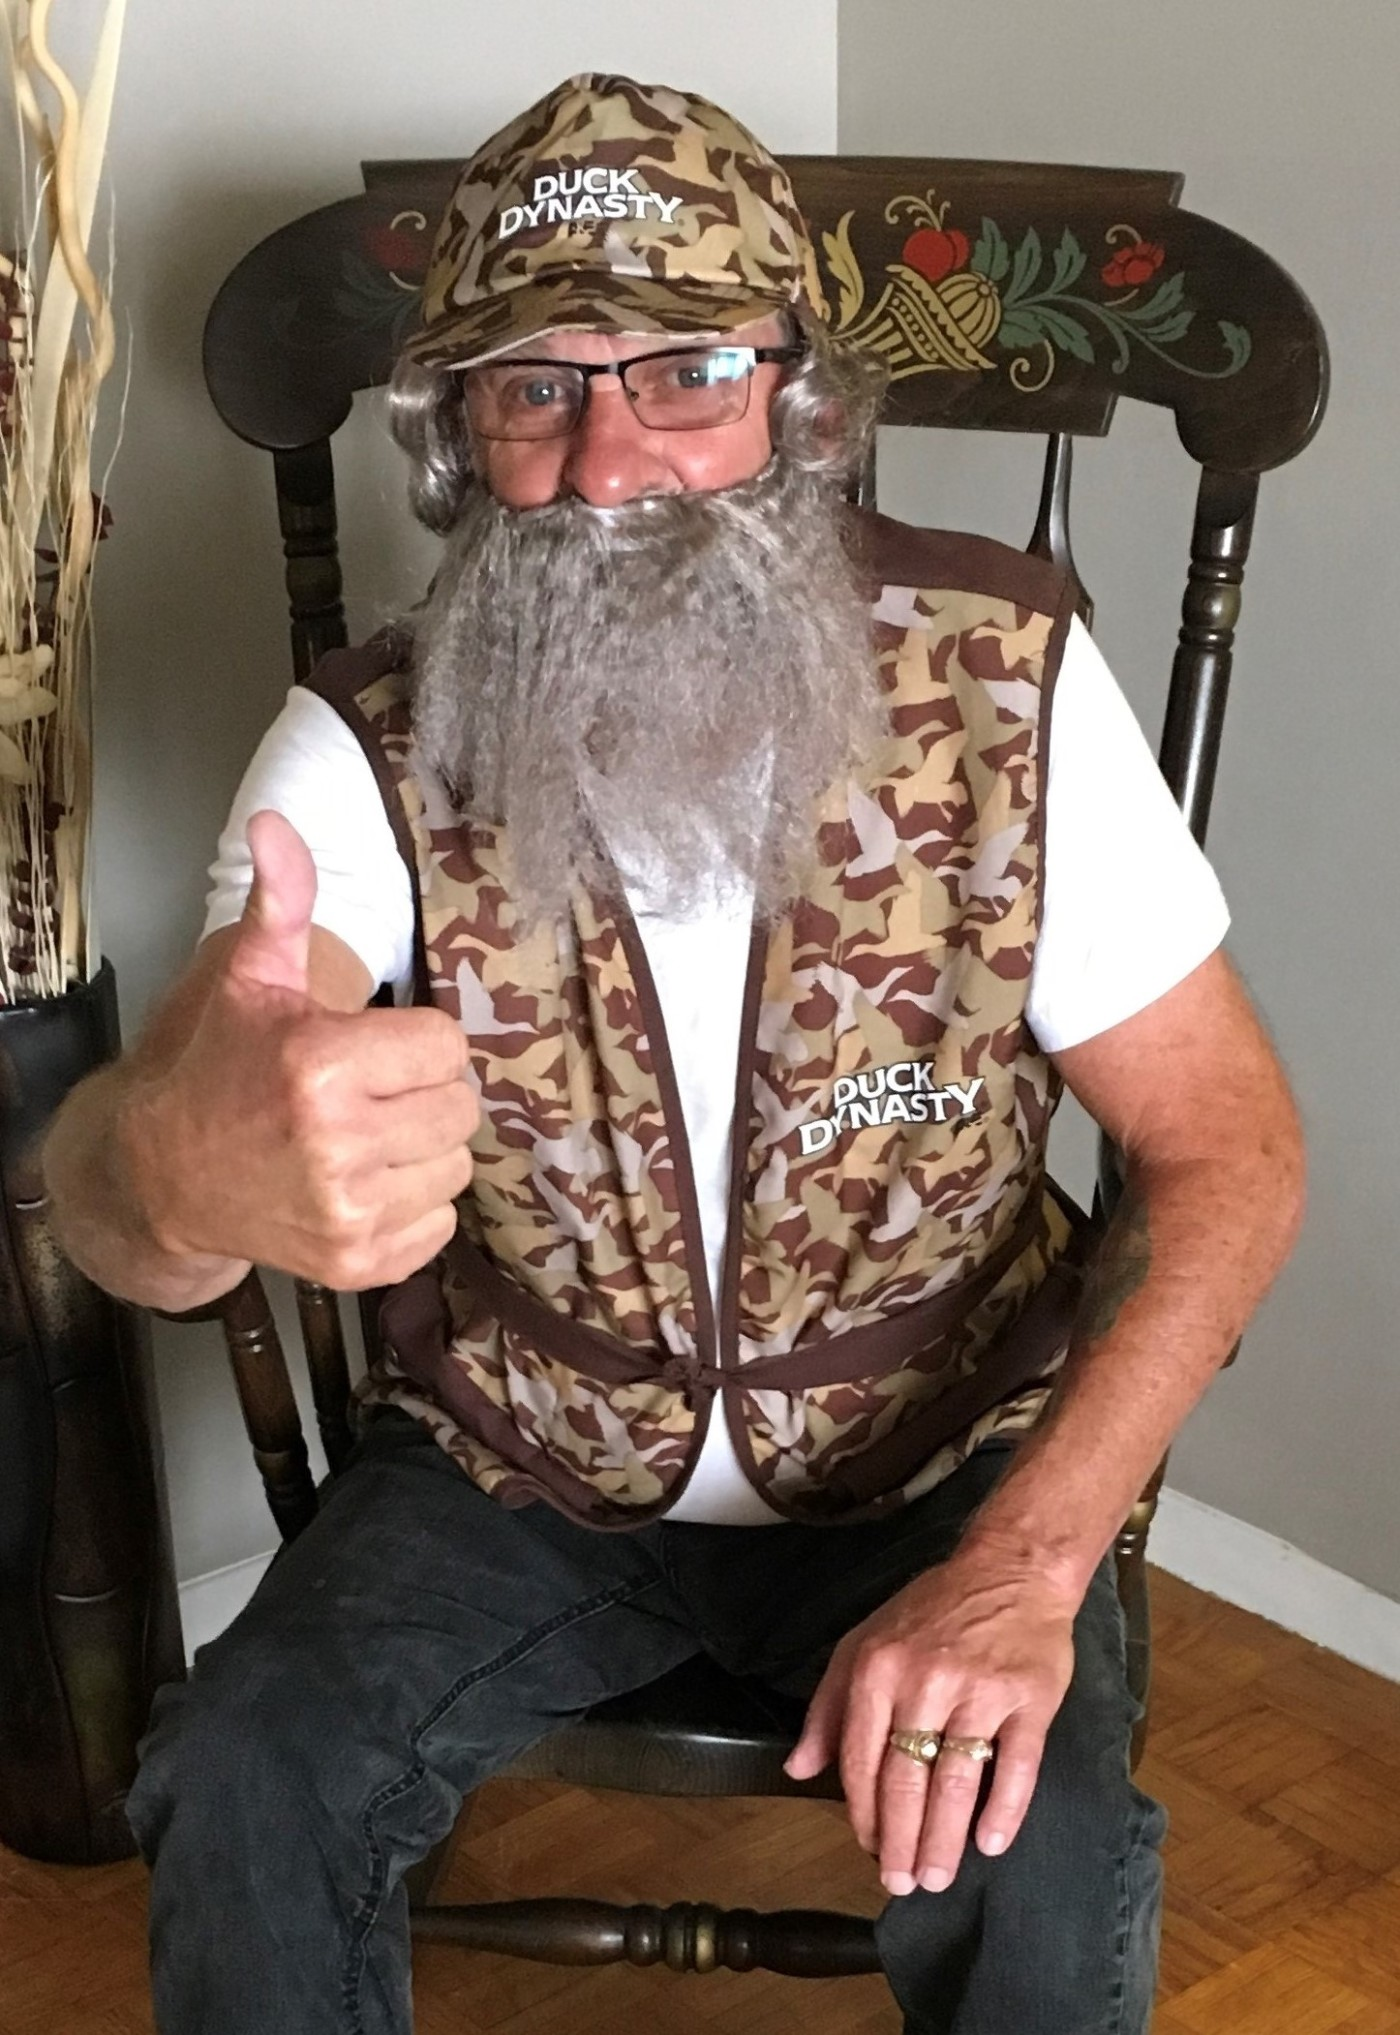 My brother Al dressed as Si from Duck Dynasty